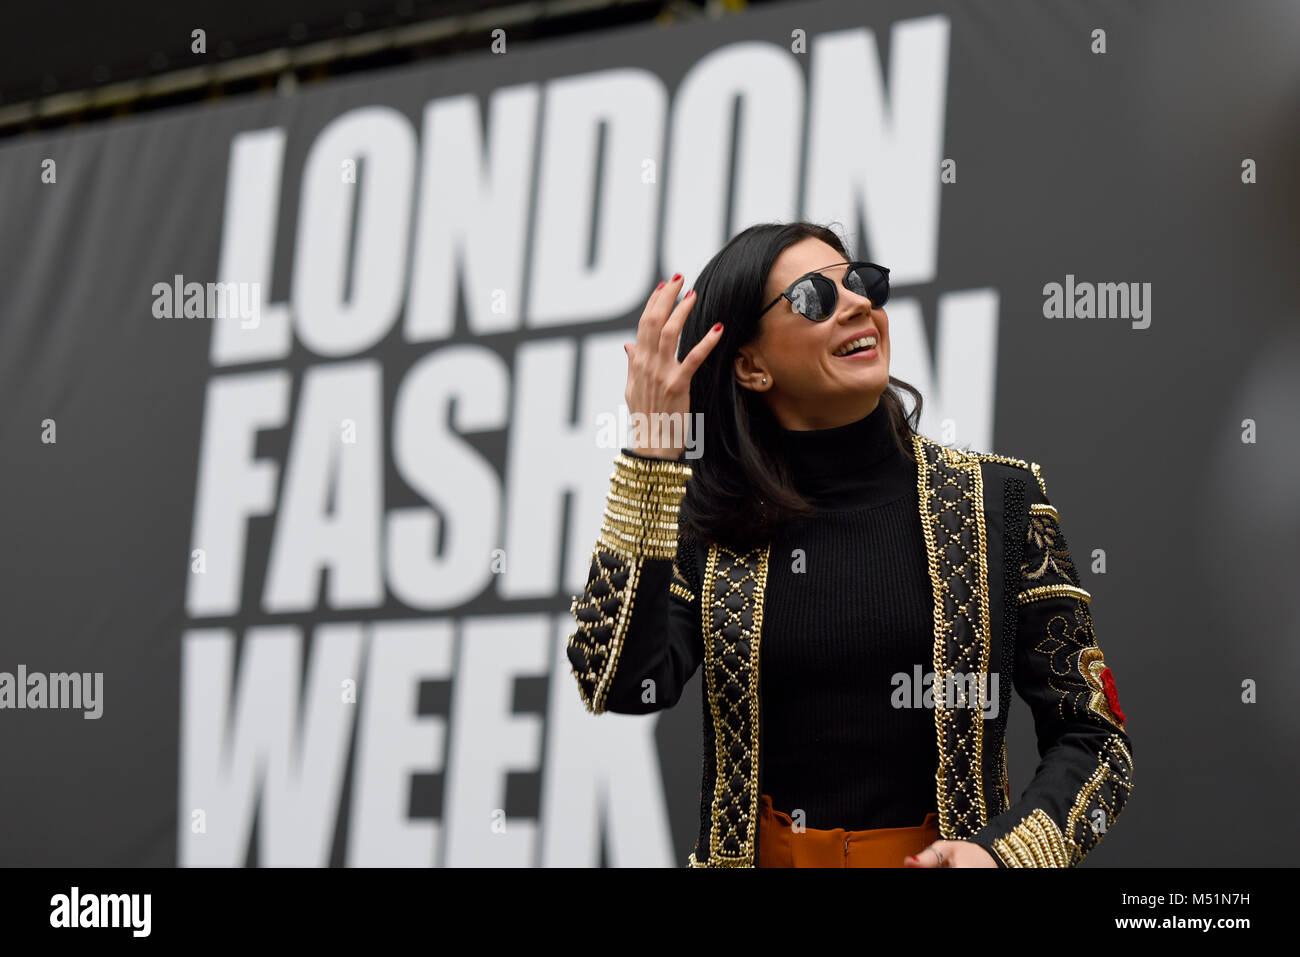 model-posing-by-london-fashion-week-sign-female-girl-woman-fashionable-M51N7H.jpg